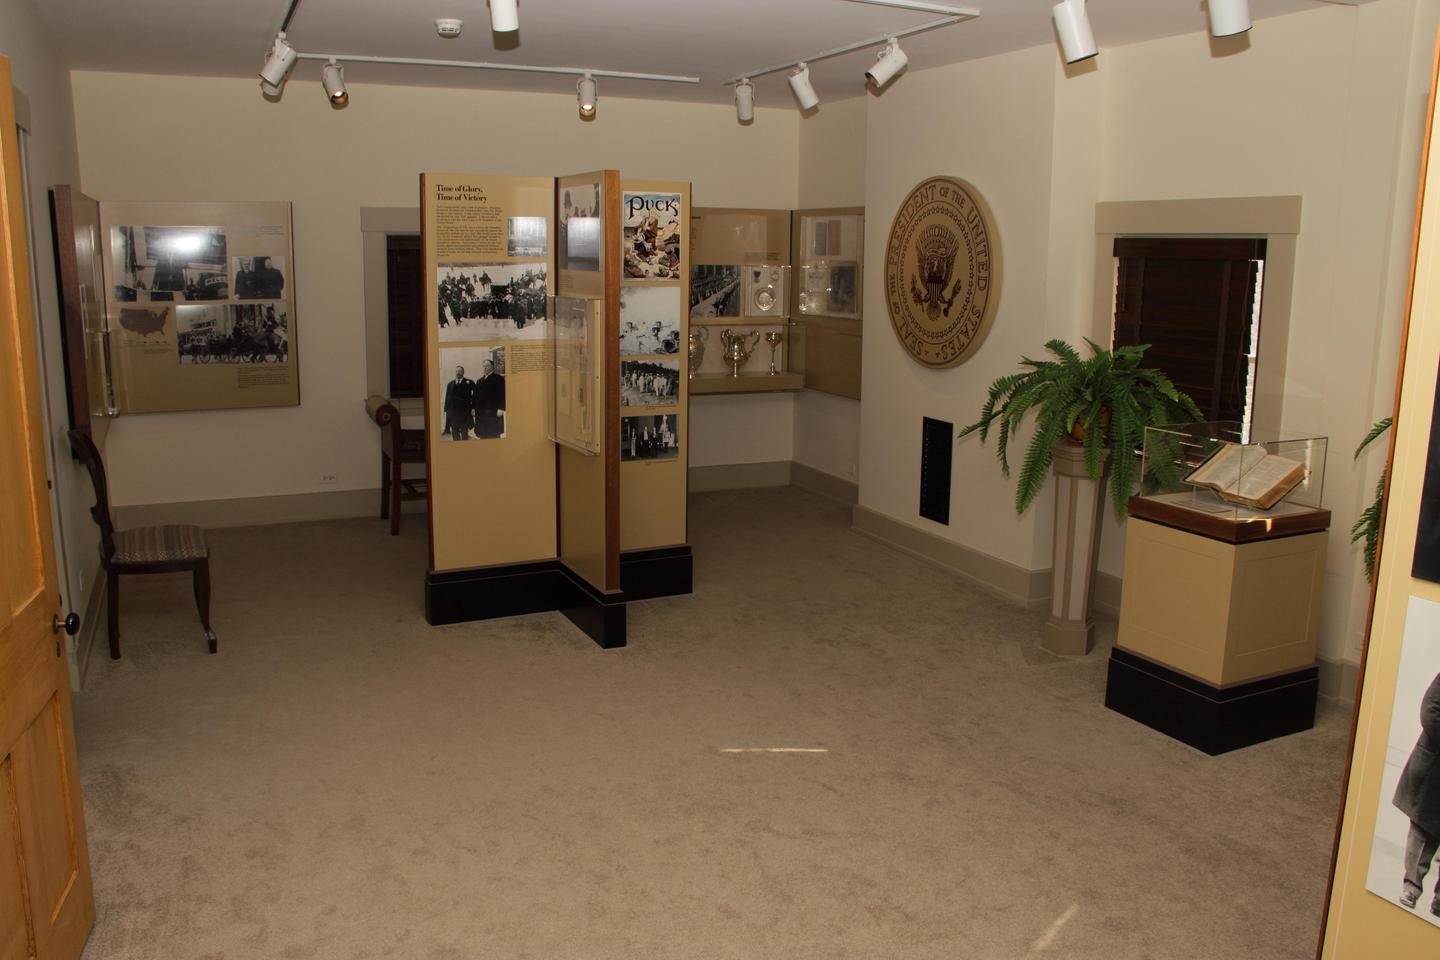 Interpretive Exhibits inside of the Taft homeA room in the Taft home with exhibits focusing on Taft's tenure as President.